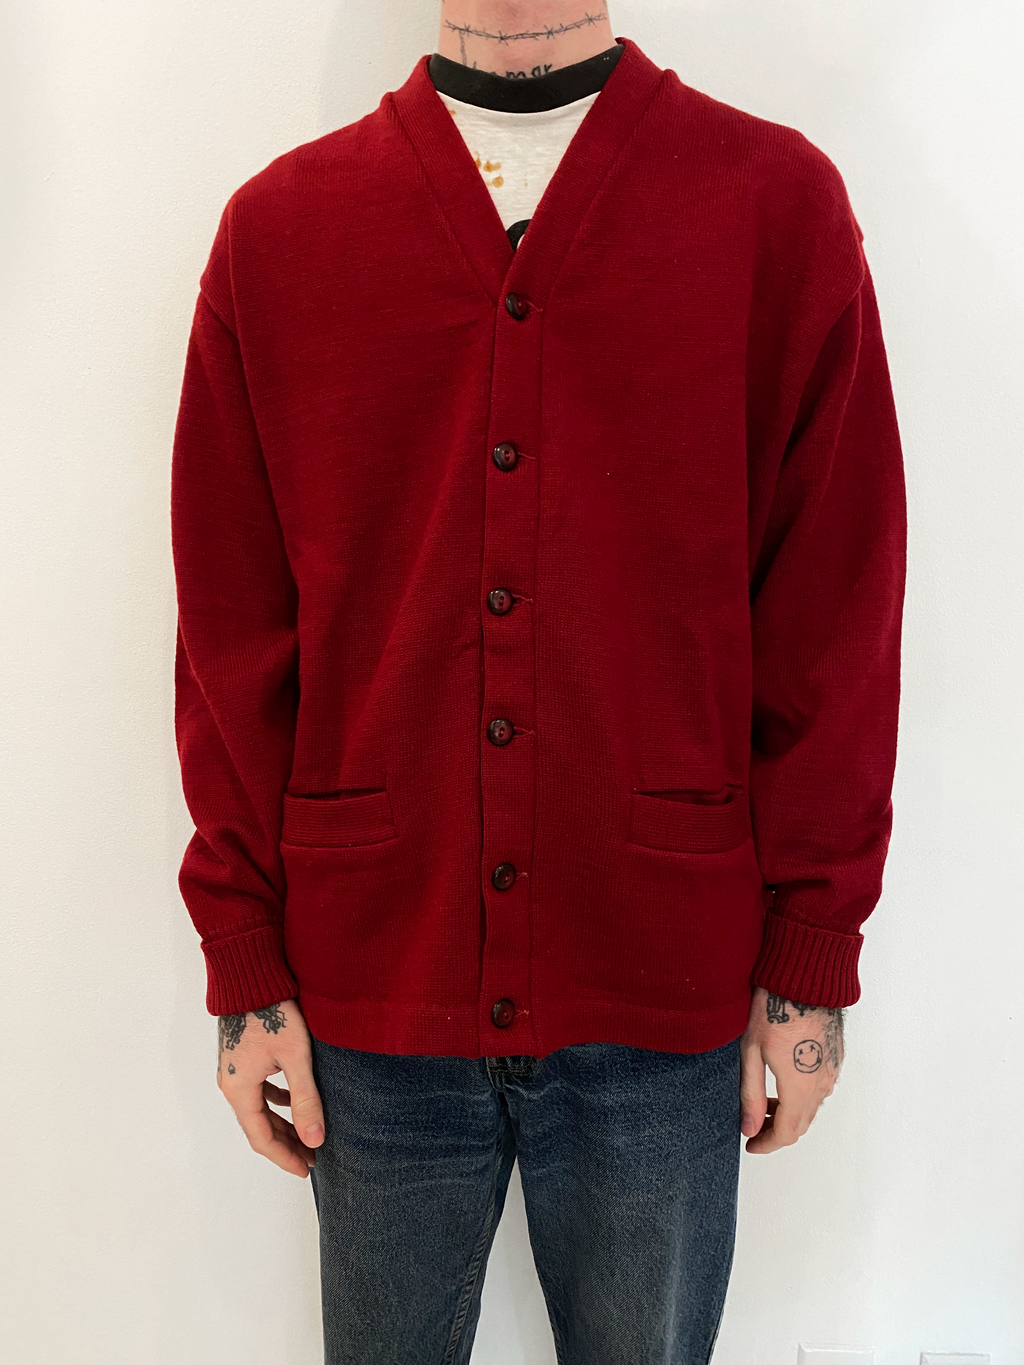 1950's H.L. Whiting Co Letterman Cardigan (L/XL)